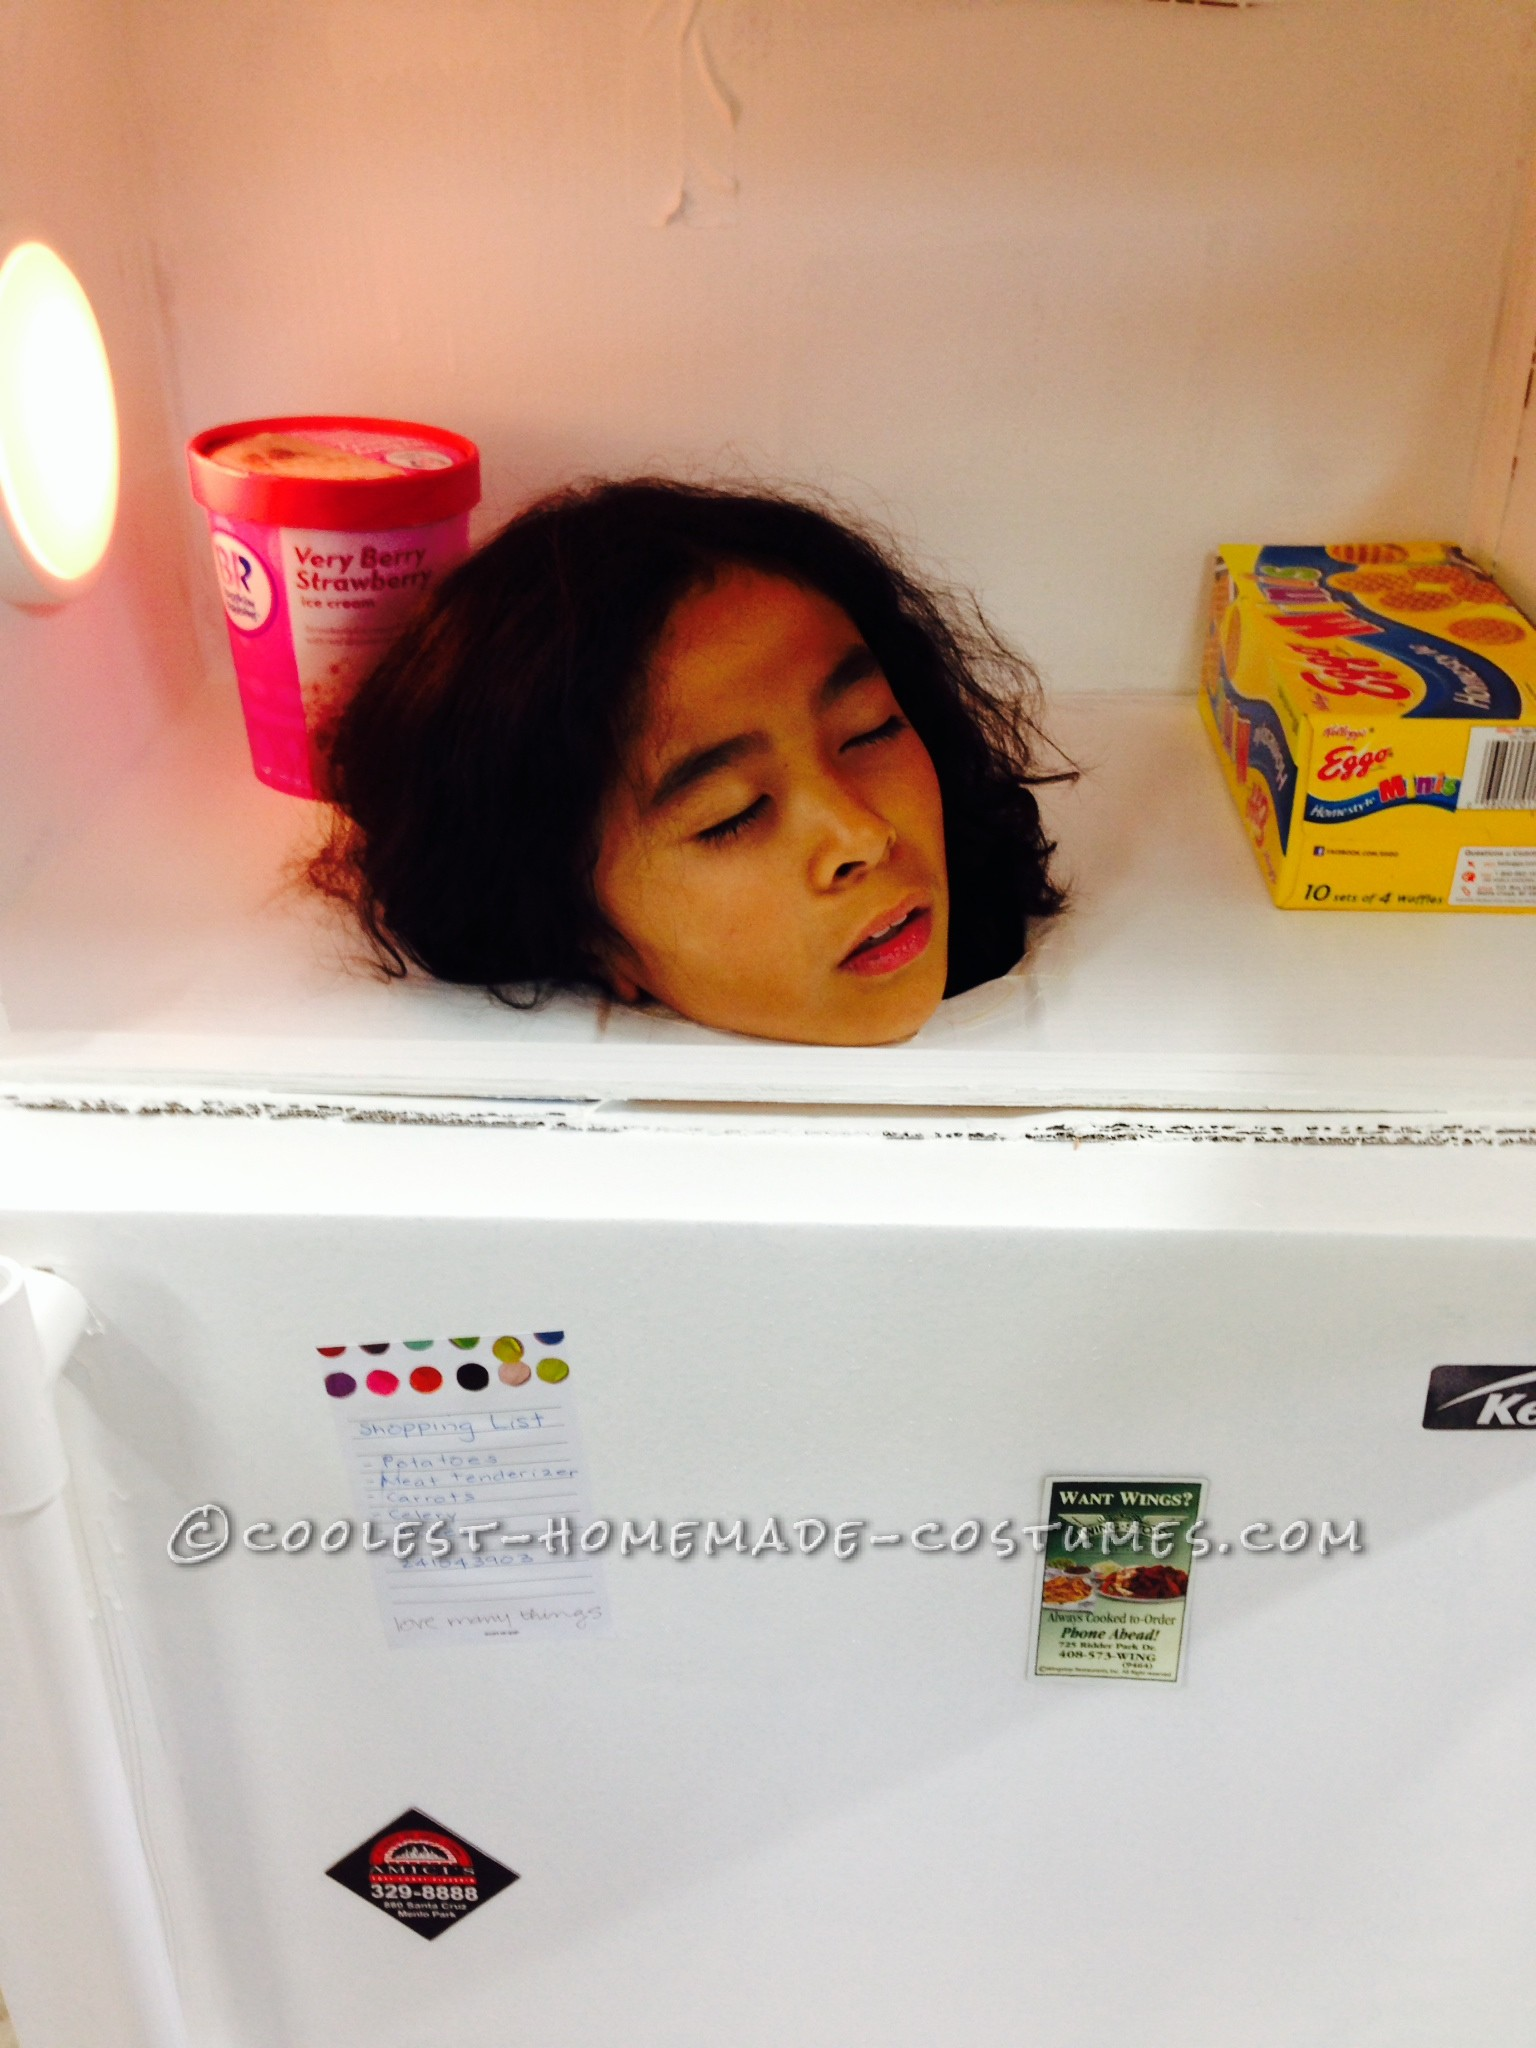 Realistic-Looking Refrigerator Costume with Frozen Head Inside